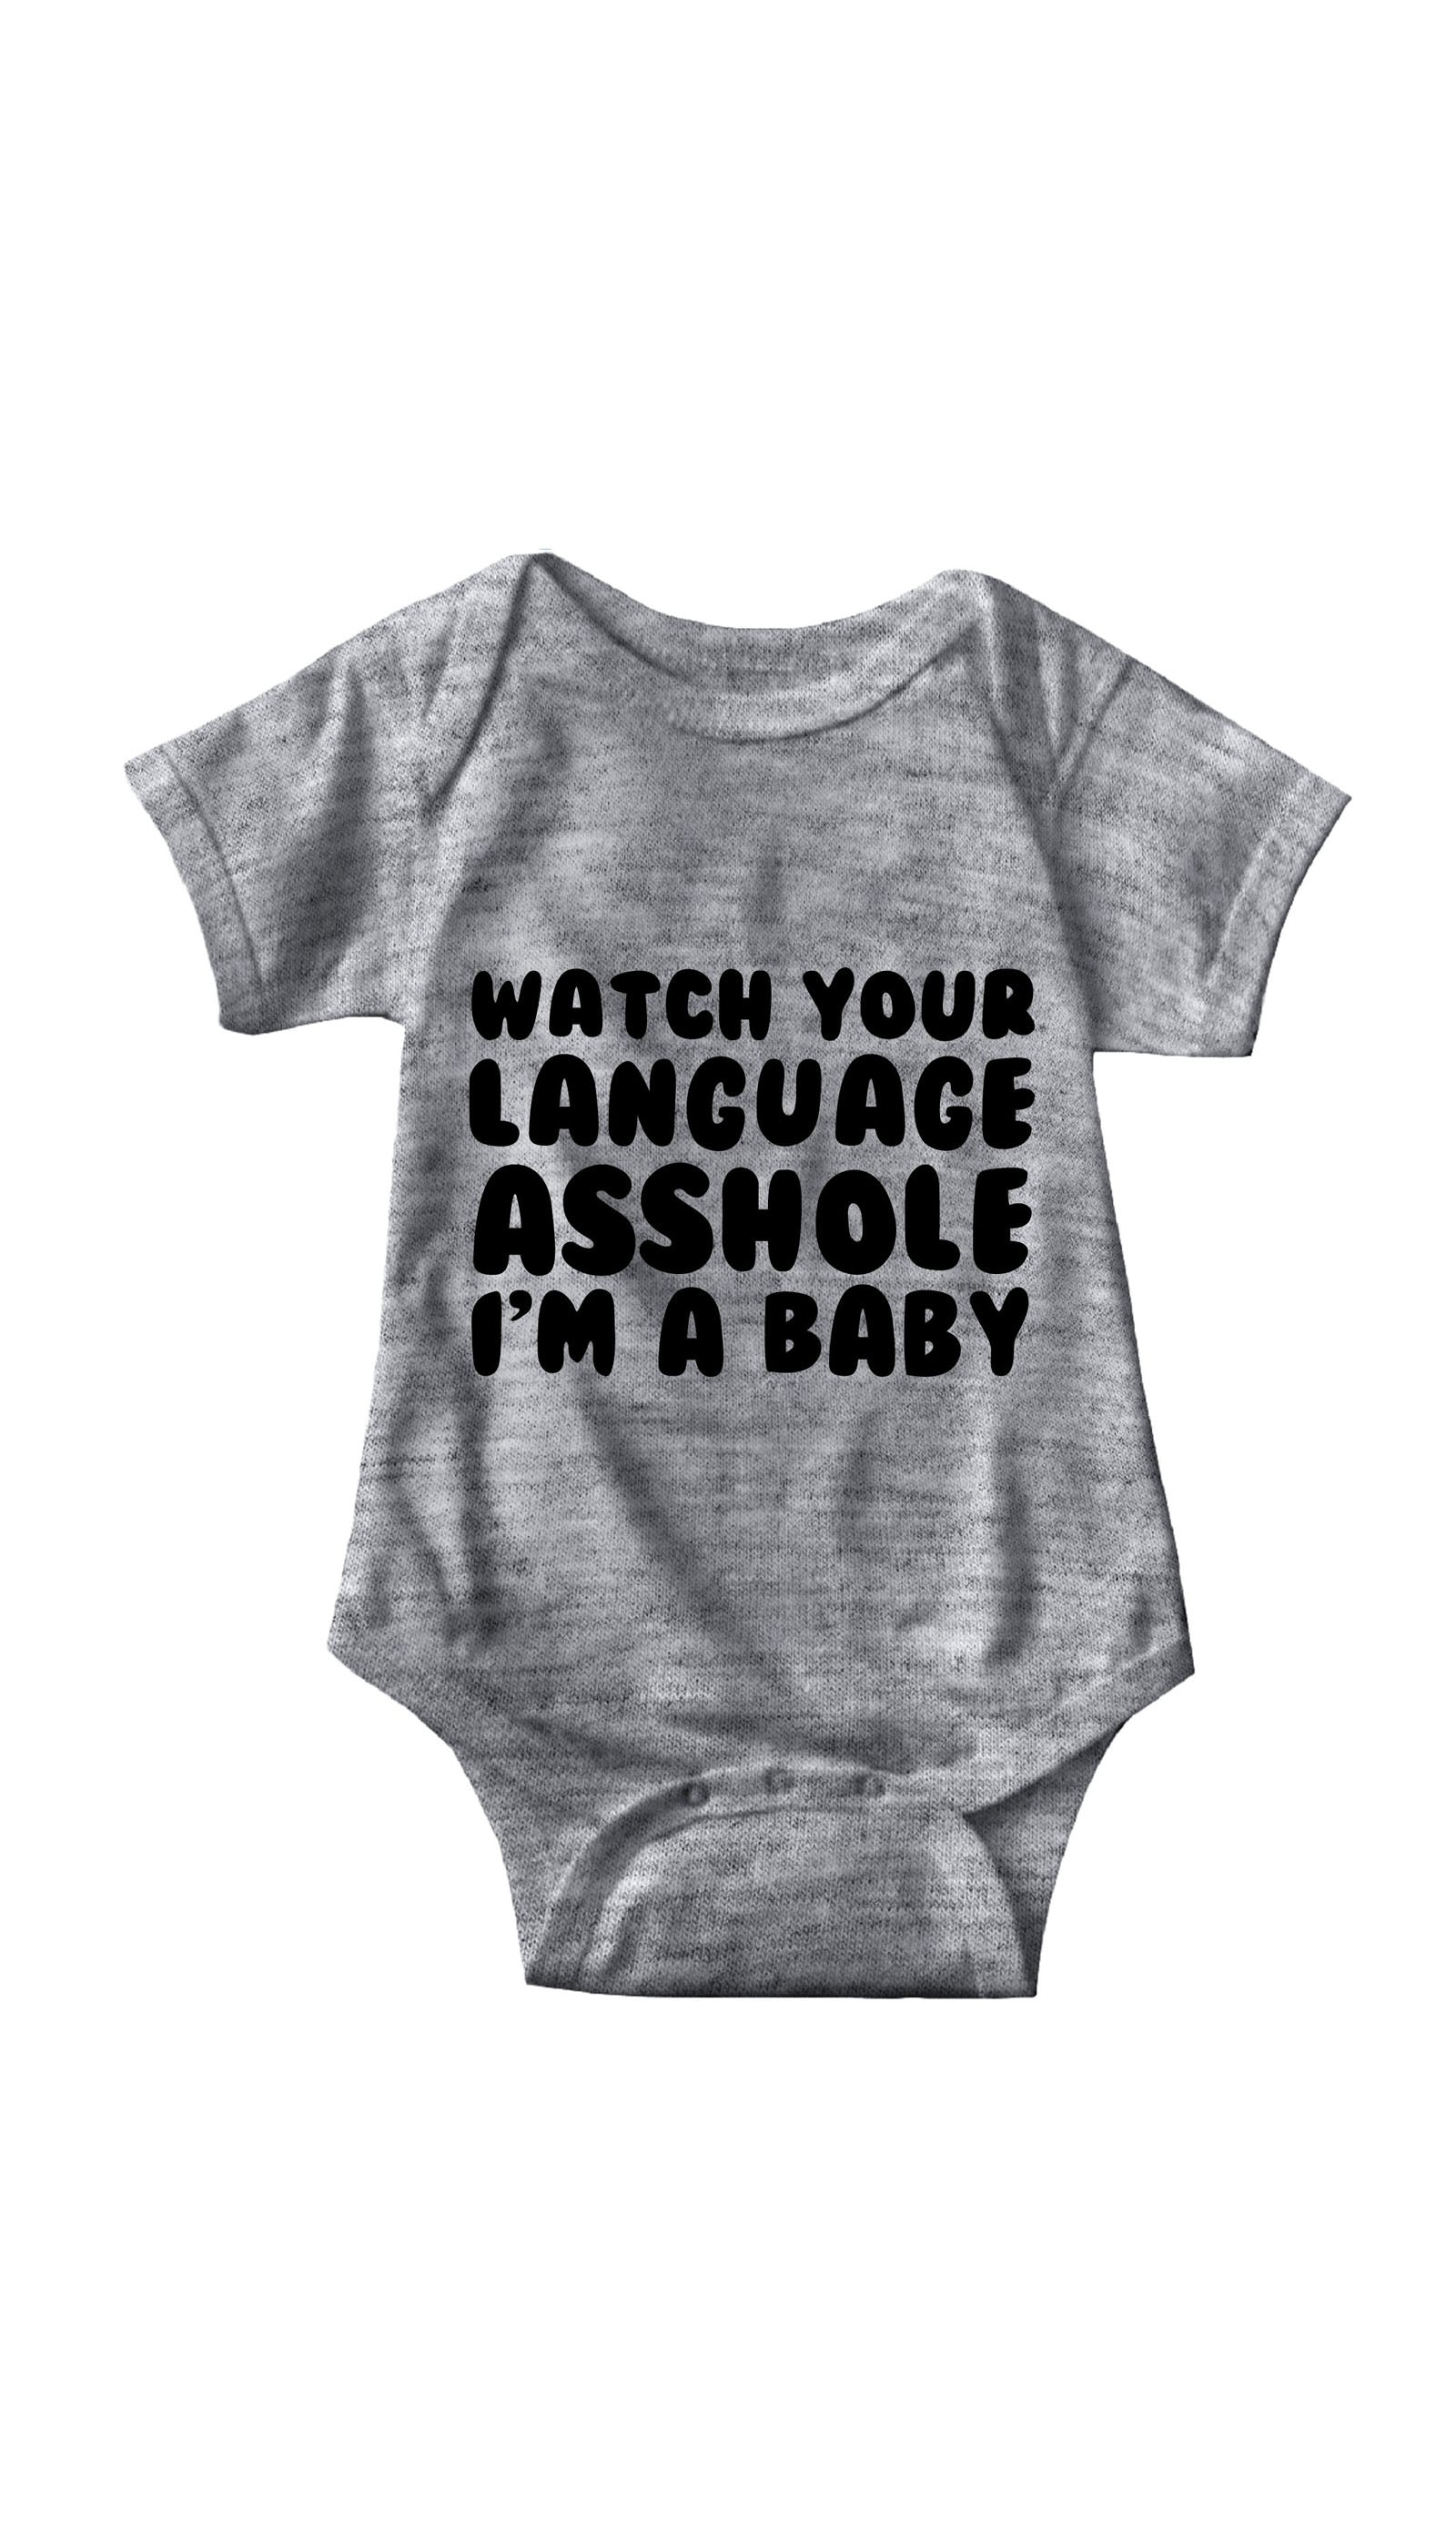 Watch Your Language Asshole Gray Infant Onesie | Sarcastic ME